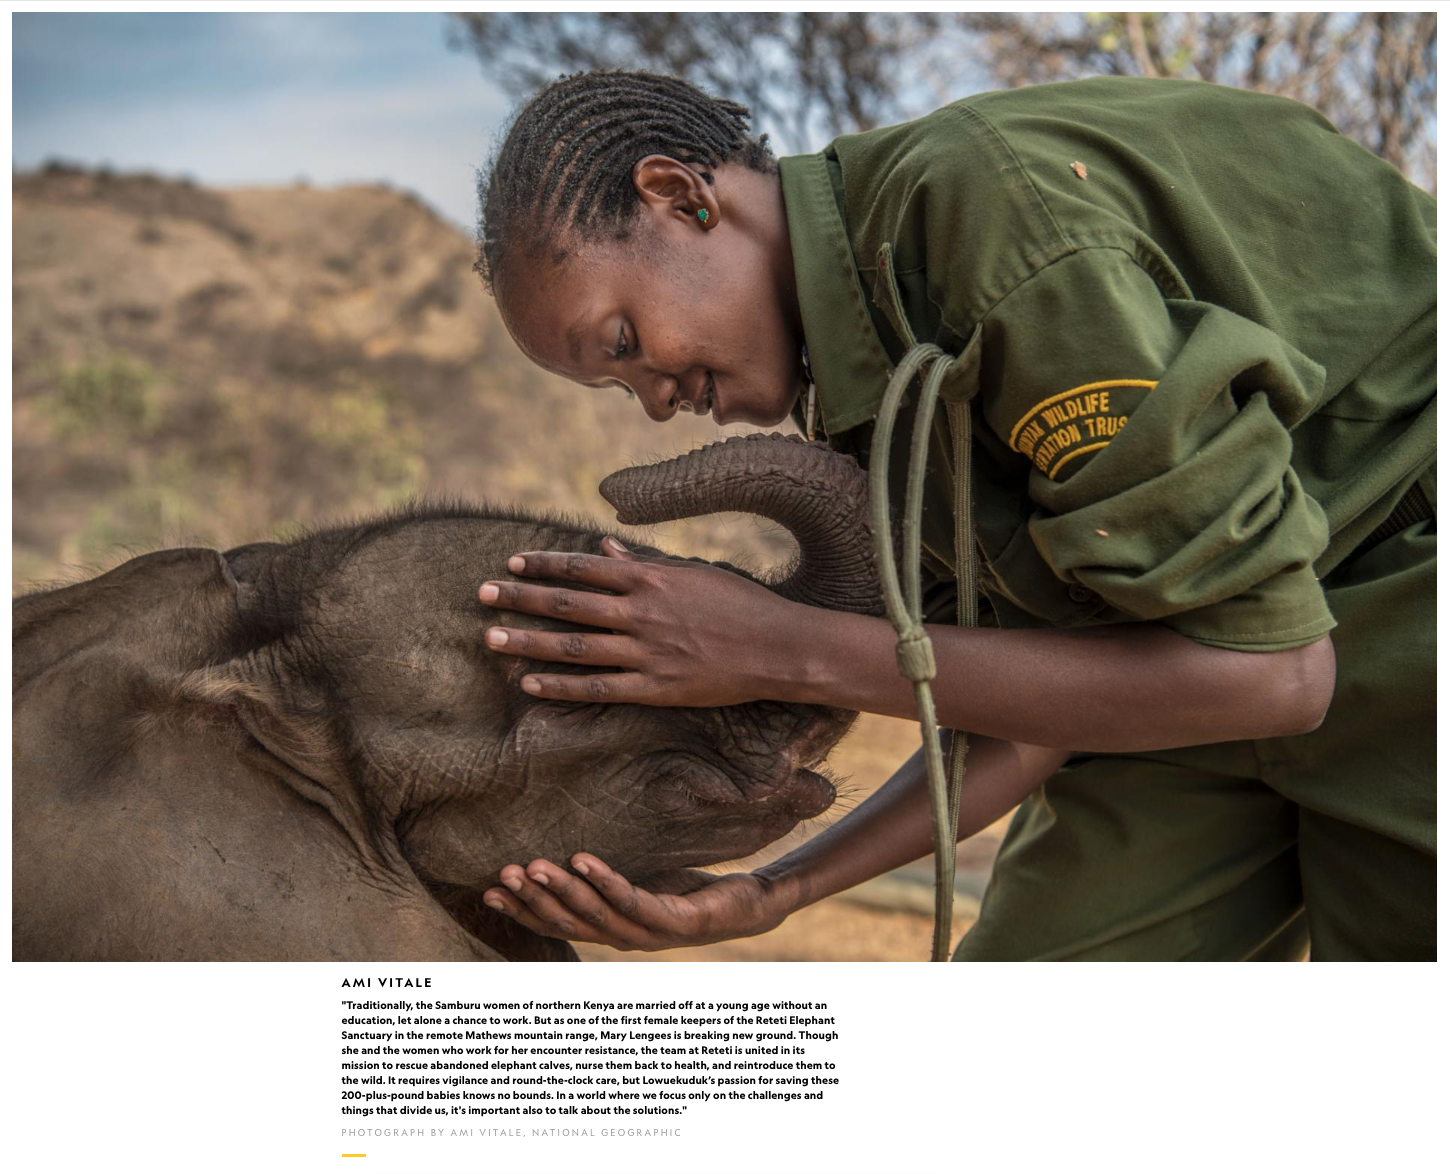 National Geographic Celebrates International Women's Day